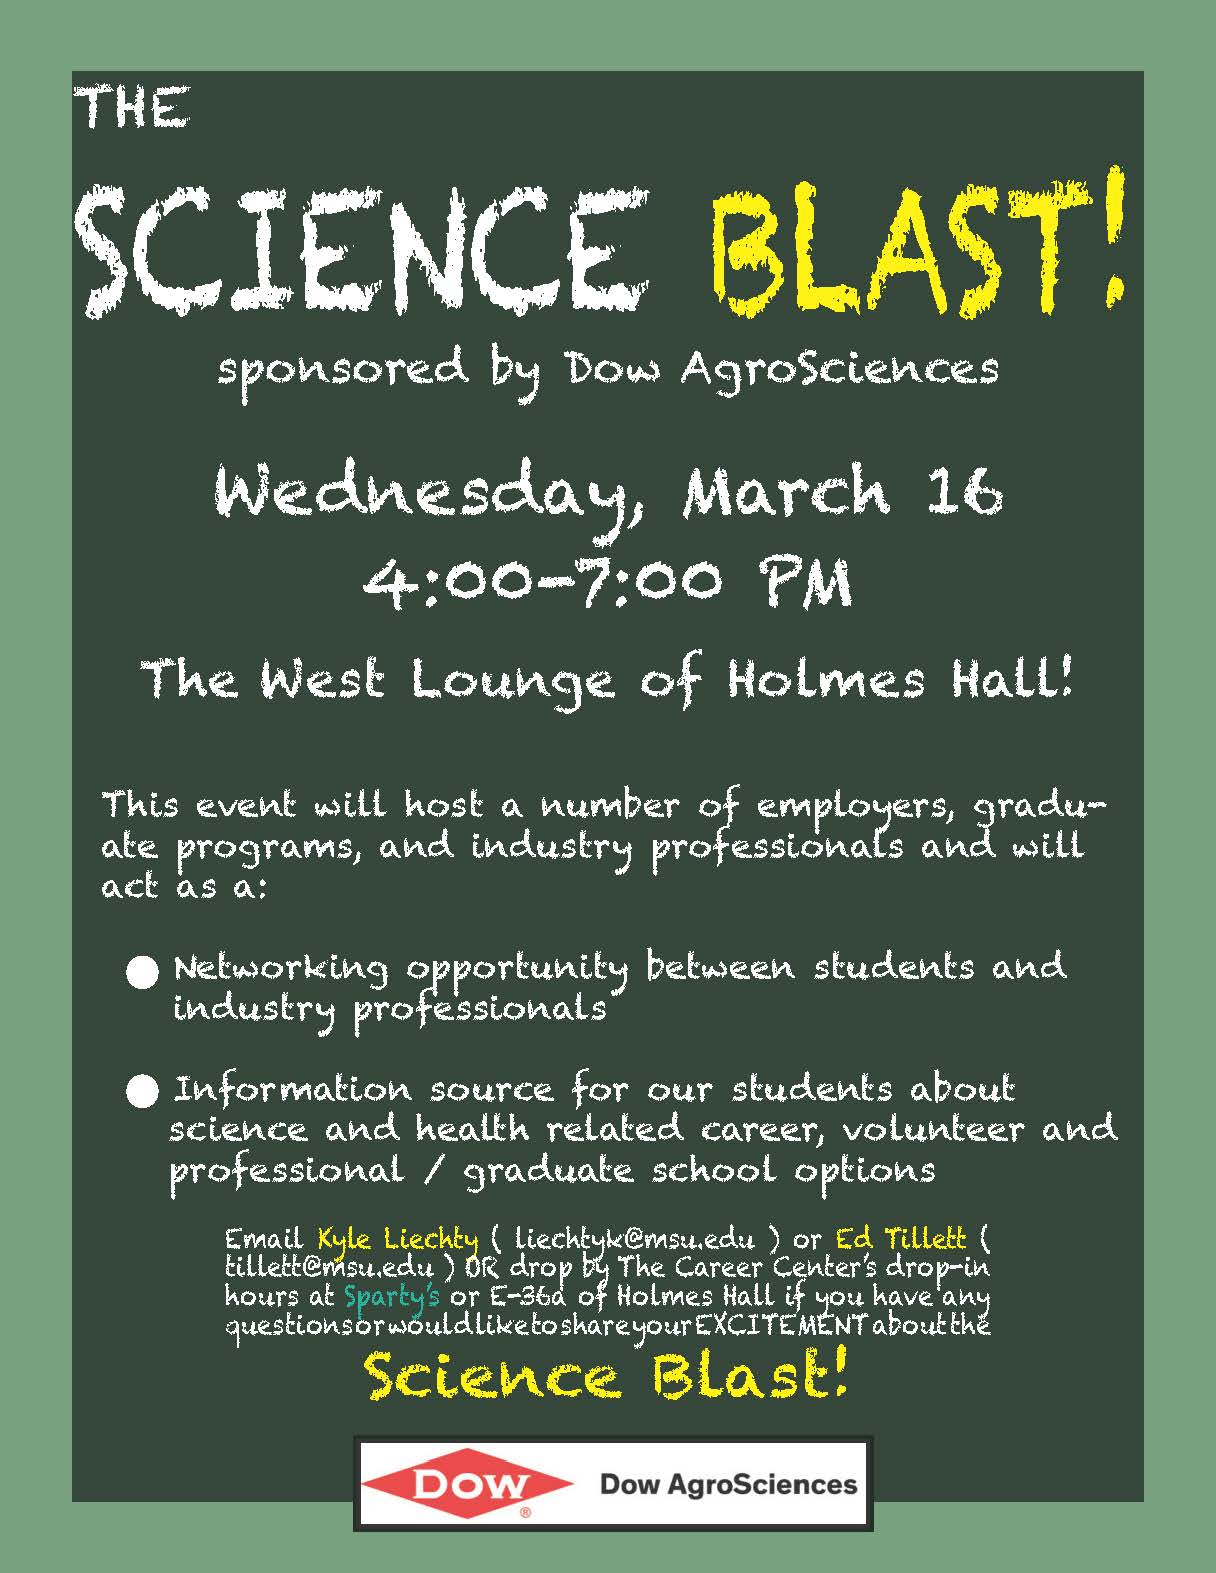 Network with Professionals during Science Blast!